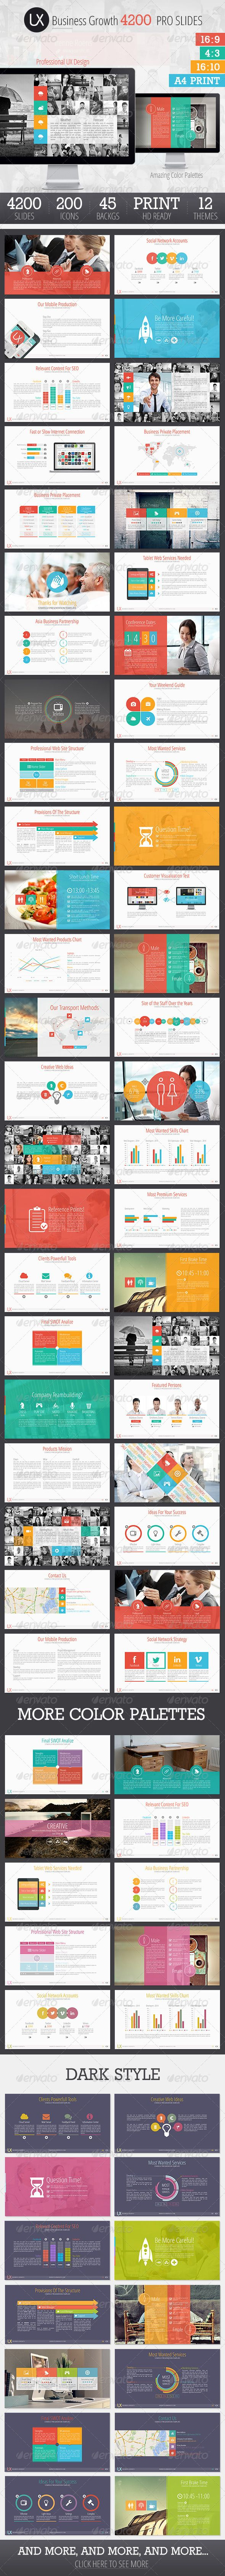 UX Design Presentation Template - Business Powerpoint Templates